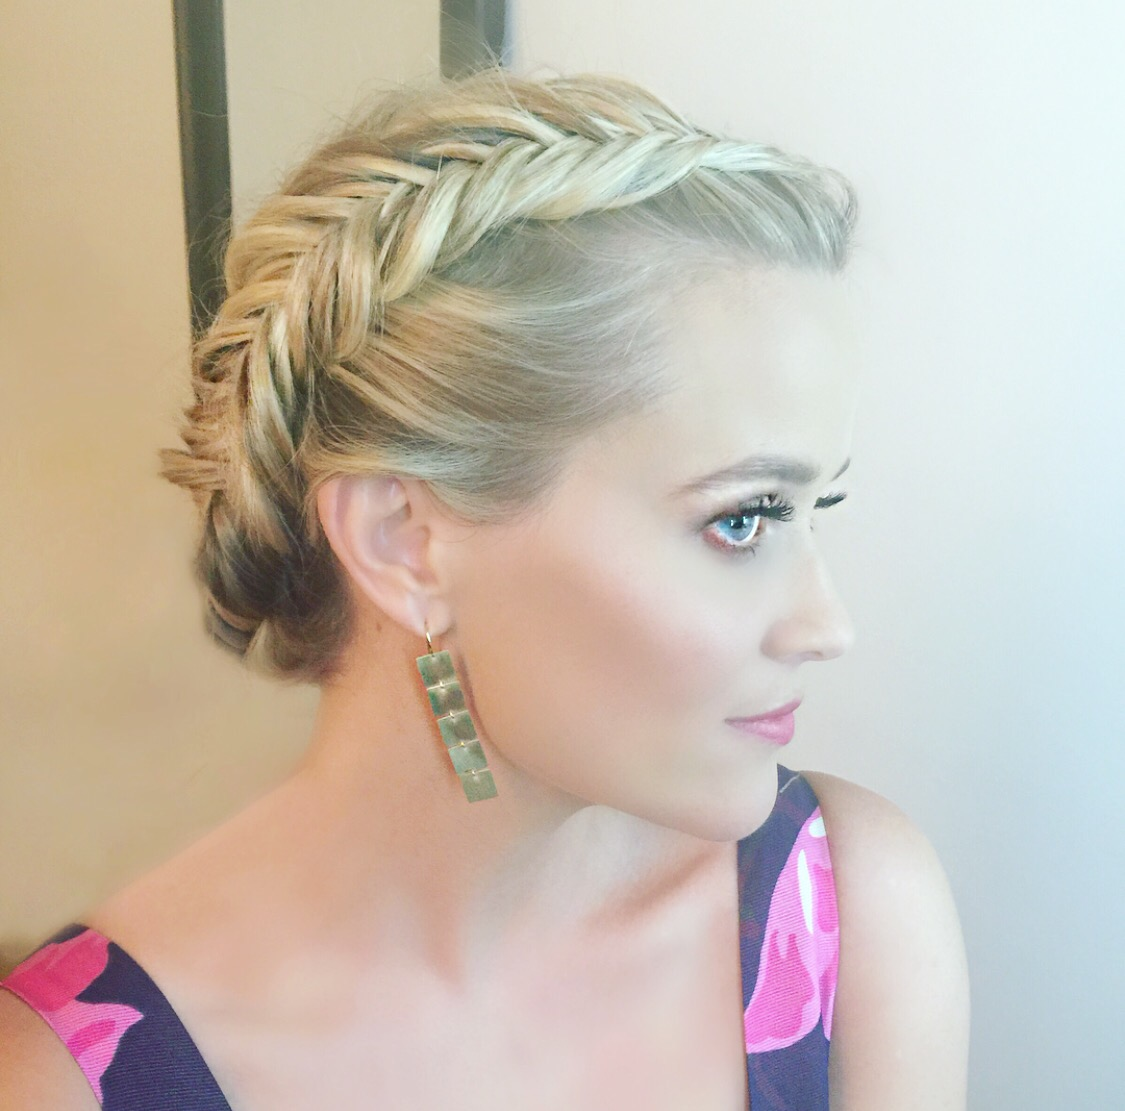 Reese Witherspoon star style hair updo news